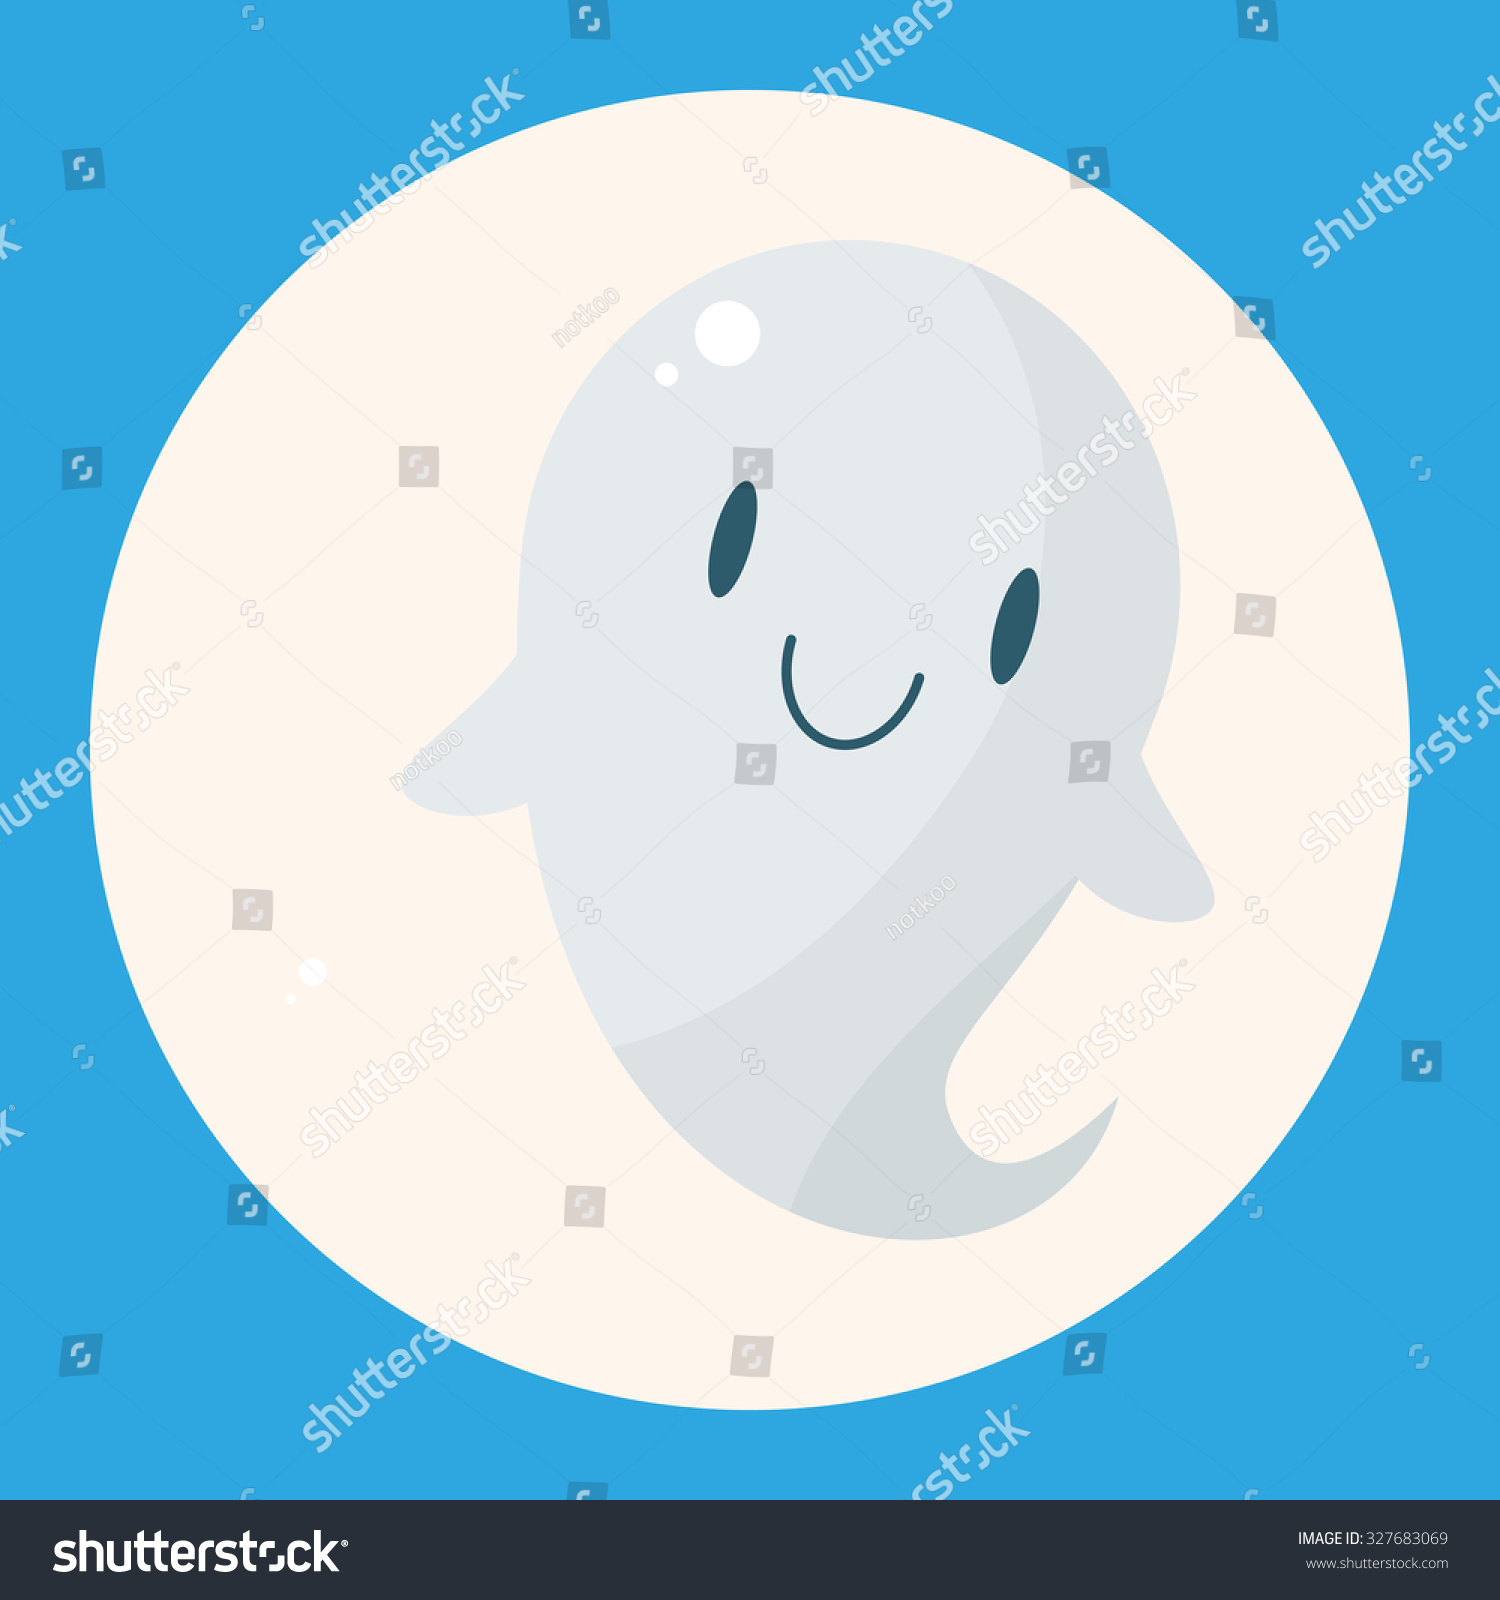 Ghost Theme Elements Stock Vector (Royalty Free) 327683069